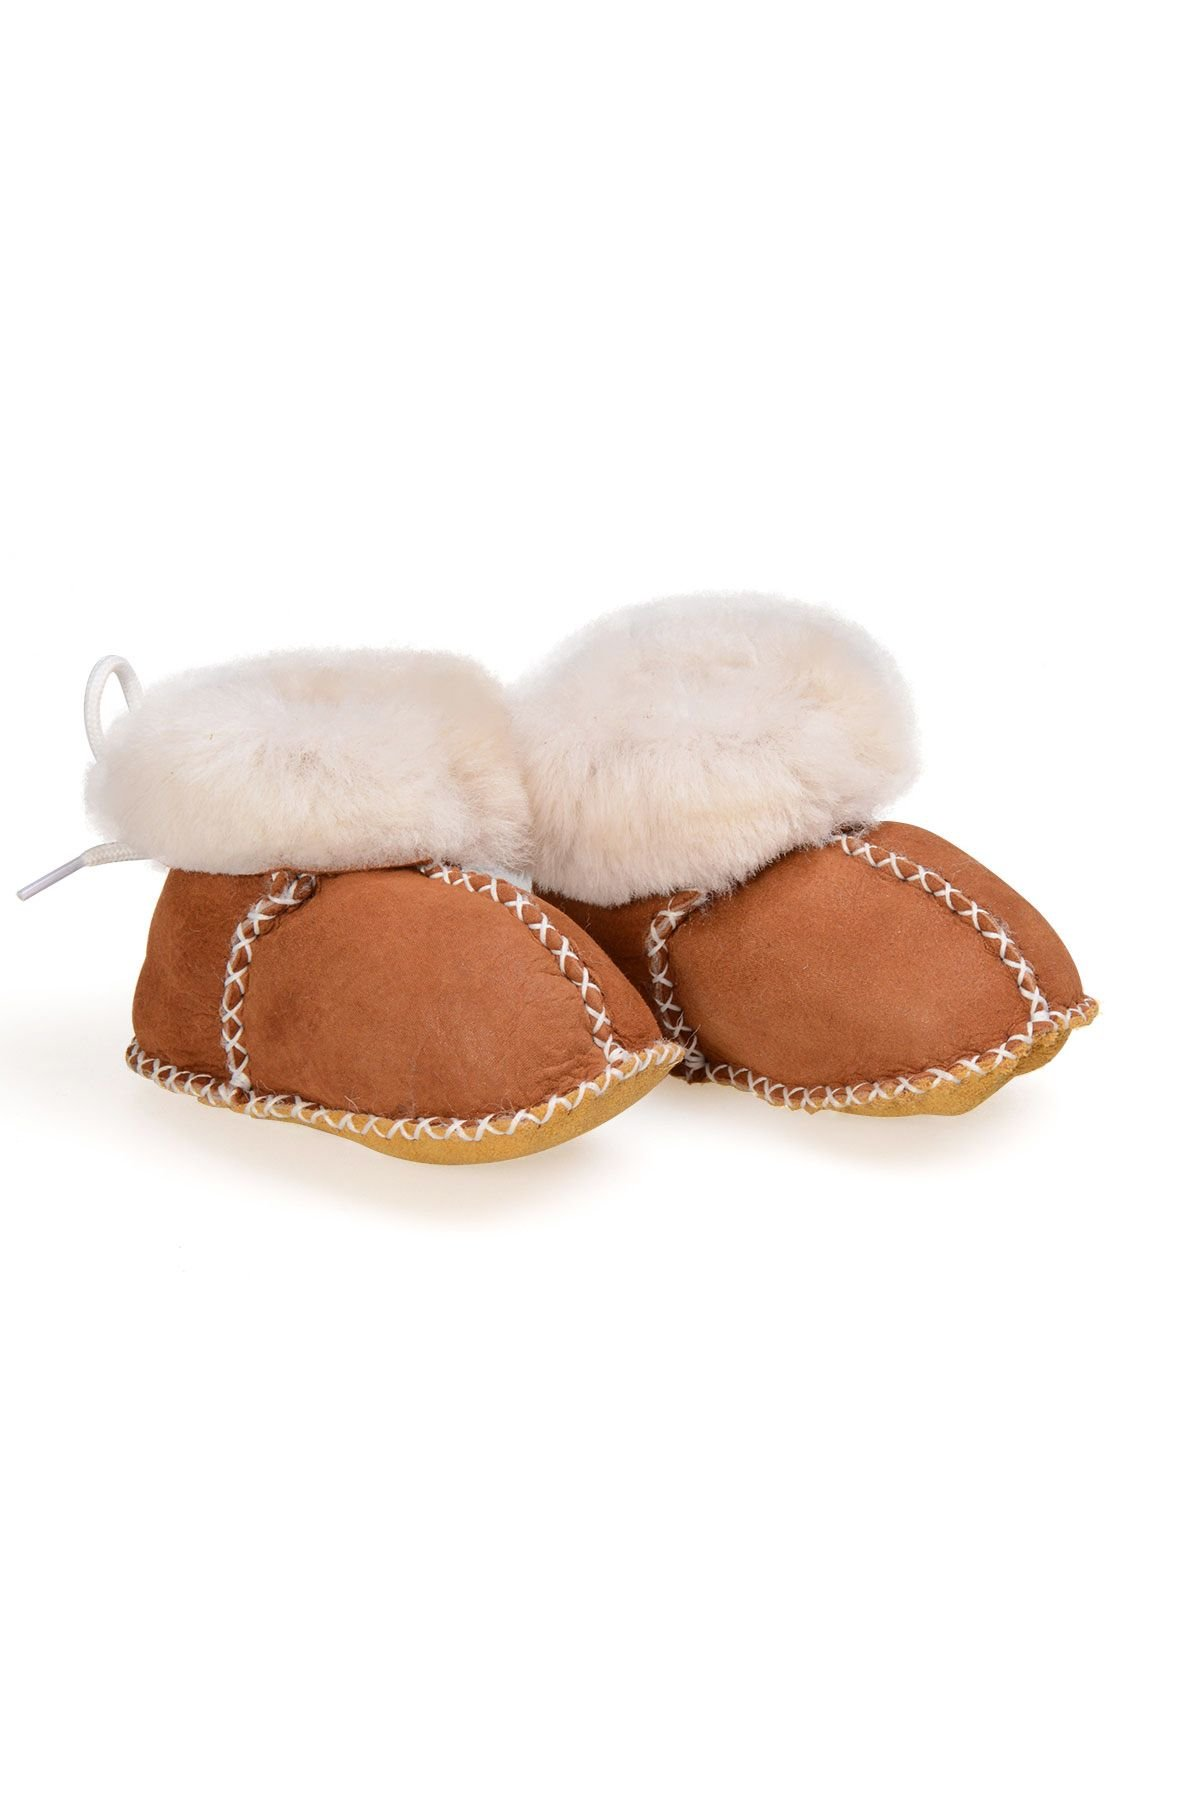 Pegia Babies Laced Shearling Booties 141105 Ginger